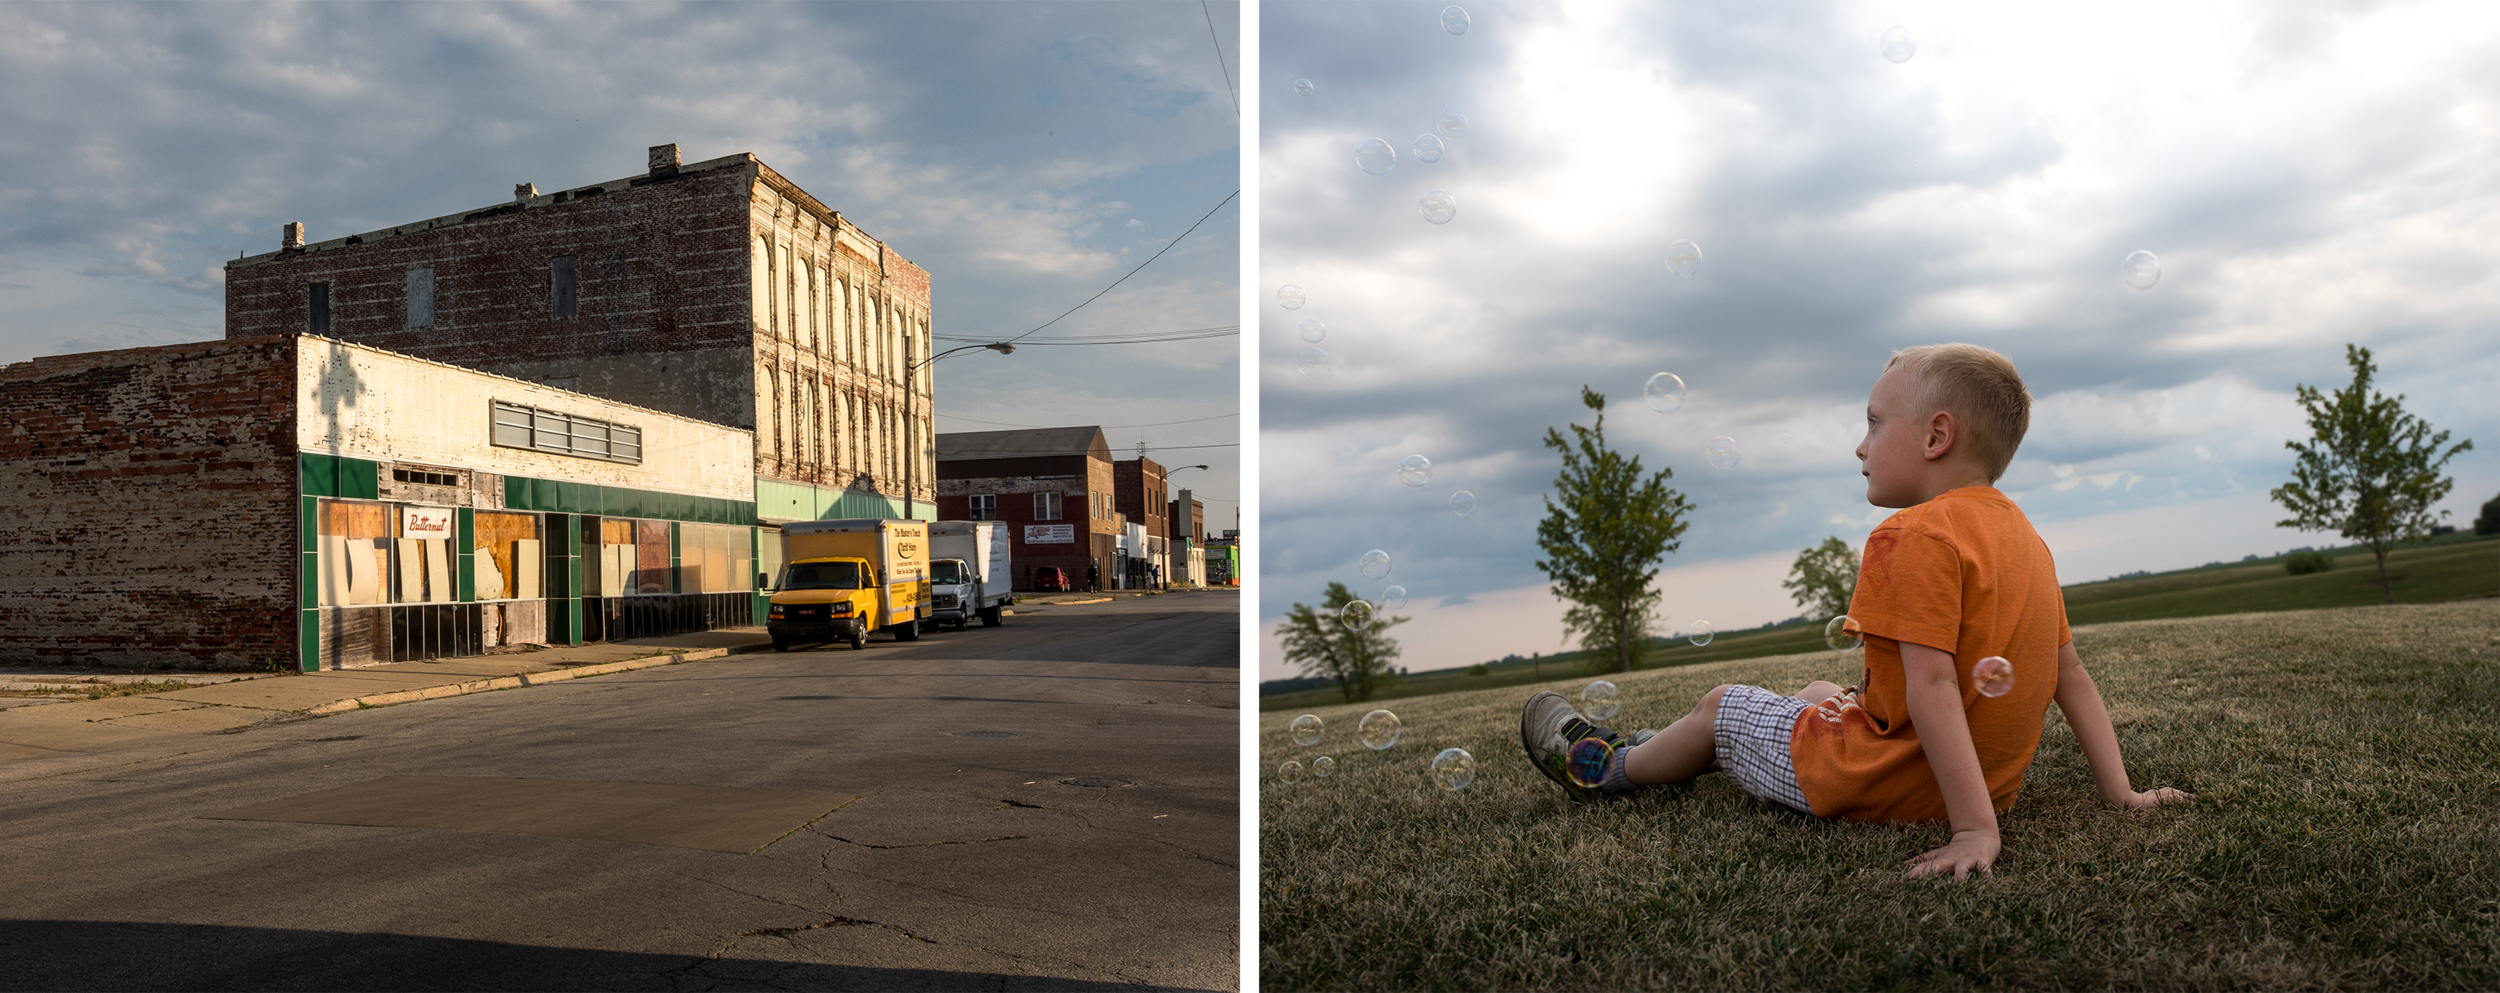 (Left) A street in Decatur, Ill. is lined with abandoned businesses. (Right) Caleb Christian, 5, lays on the ground while playing with bubbles at Chill on the Hill, a summer concert event in Mt. Zion, Ill. Christian's mother Mandy decided to return to neighboring Decatur, Ill. after moving away because an ad campaign funded by Howard Buffett cleared up misconceptions about the city's crime rate.